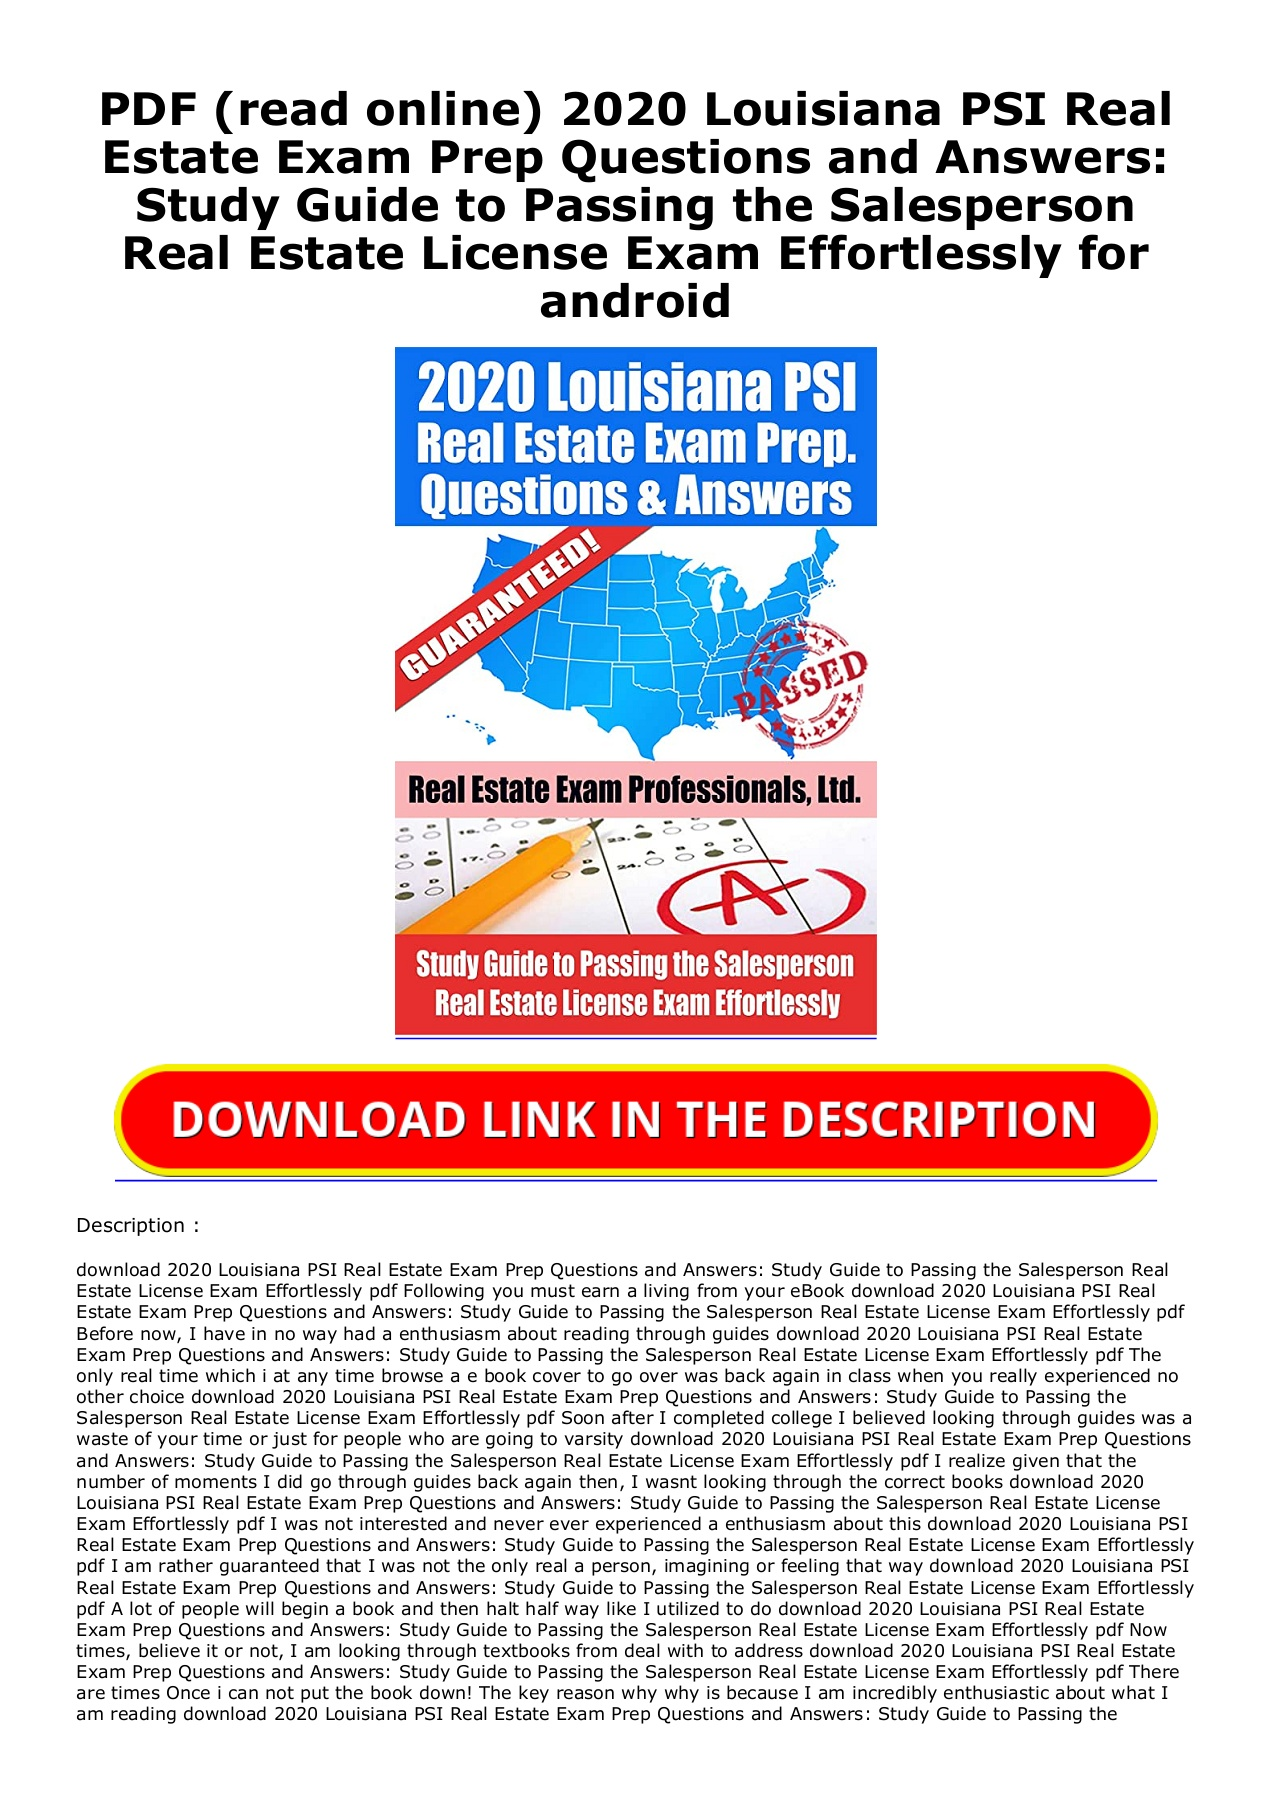 Pdf Read Online 2020 Louisiana Psi Real Estate Exam Prep Questions And Answers Study Guide To Passing The Salesperson Real Estate License Exam Effortlessly For Android Flip Ebook Pages 1 2 Anyflip Anyflip